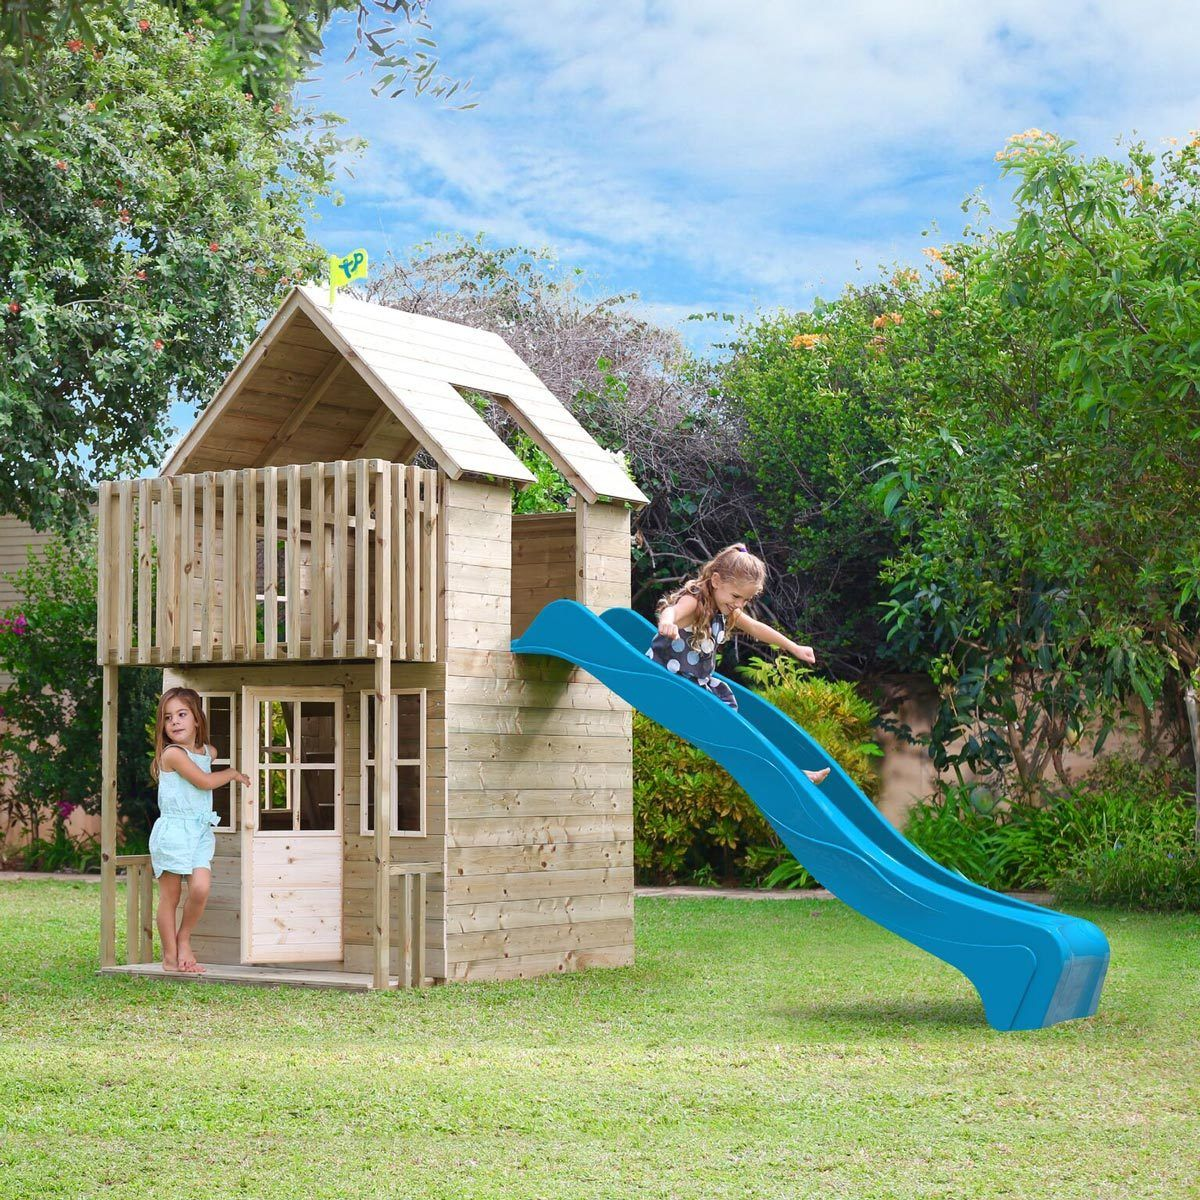 TP Skye Two Storey Wooden Playhouse and Slide (3+ years